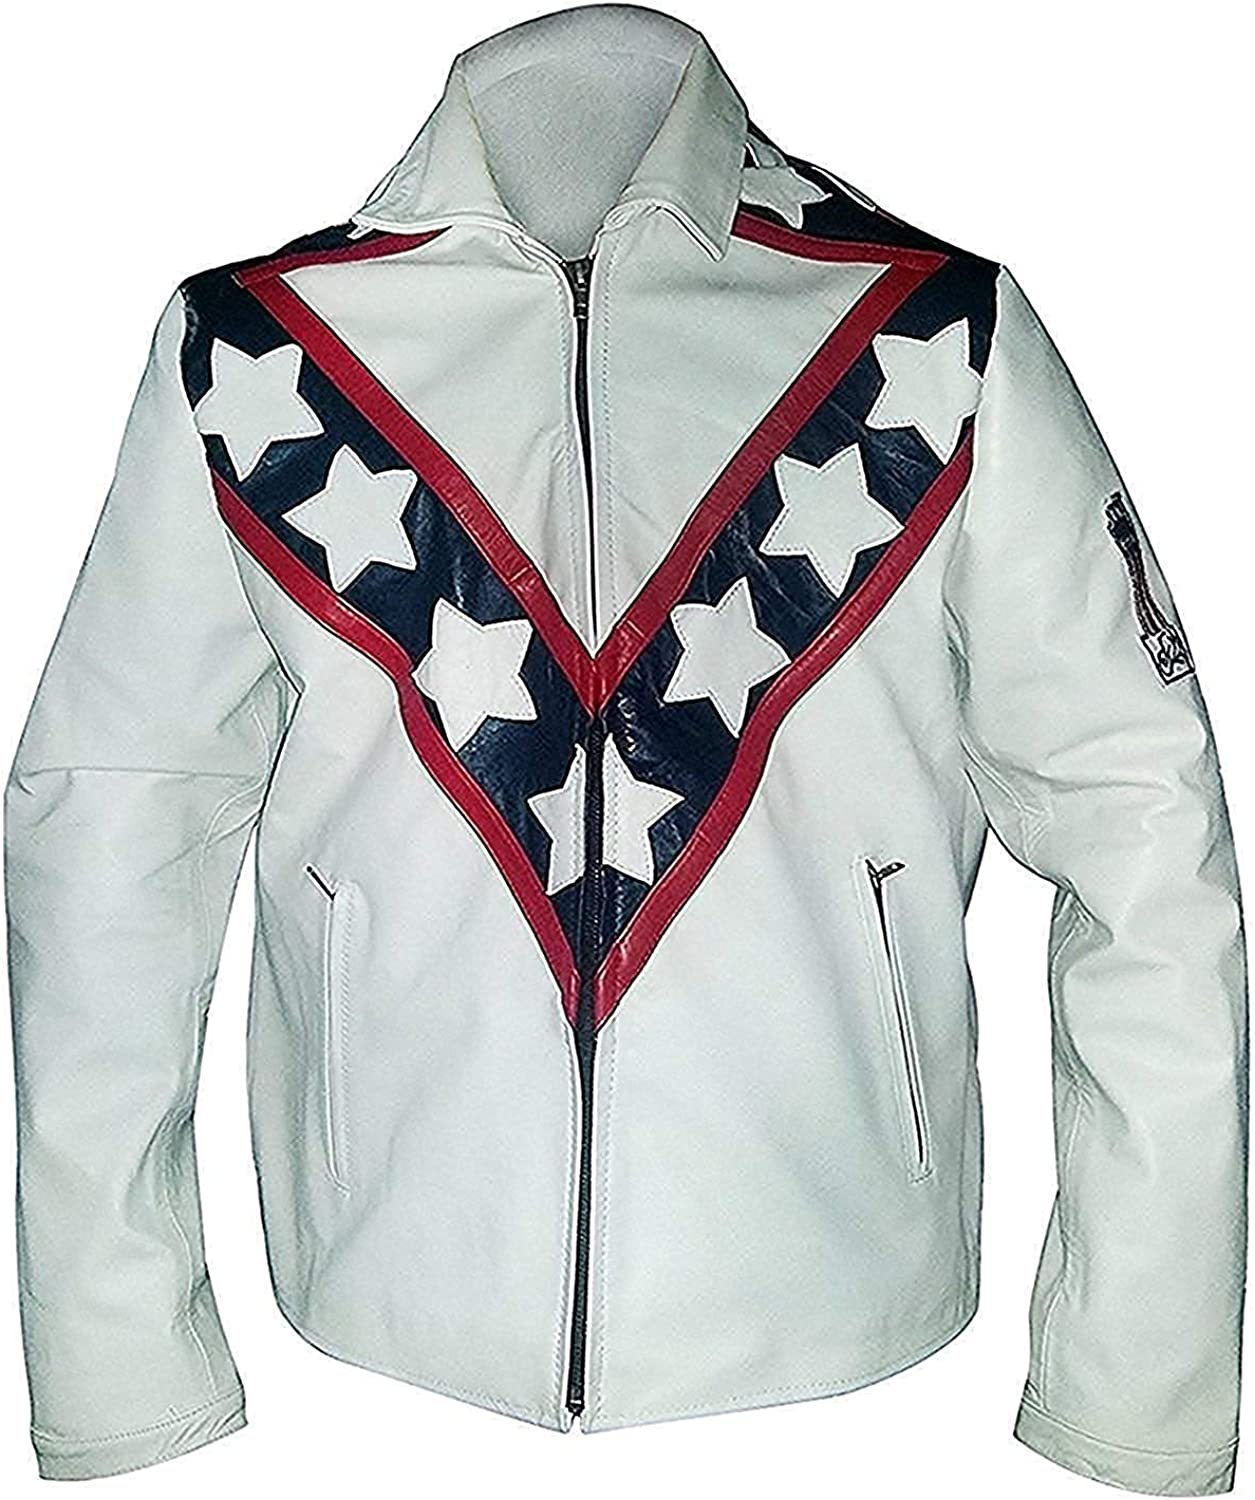 Men,s Rider White Performer Leather Jacket Motorcycle Leather Jacket